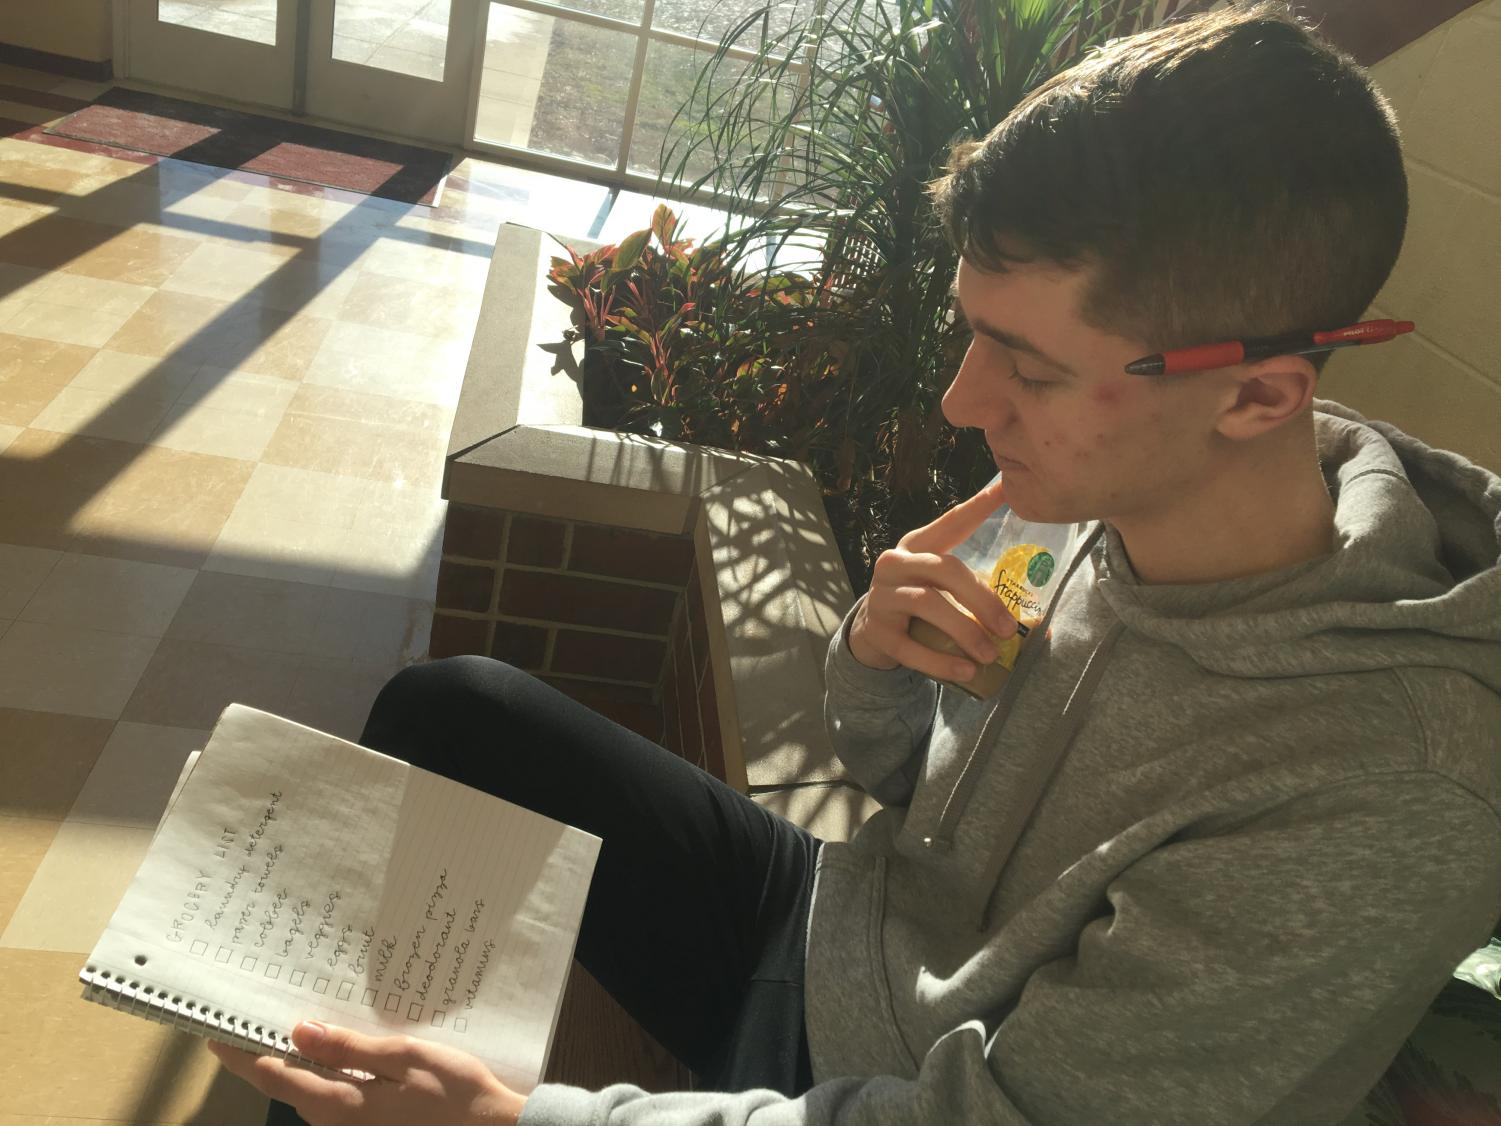 Senior Jacob Butzin examines his grocery list while enjoying coffee.